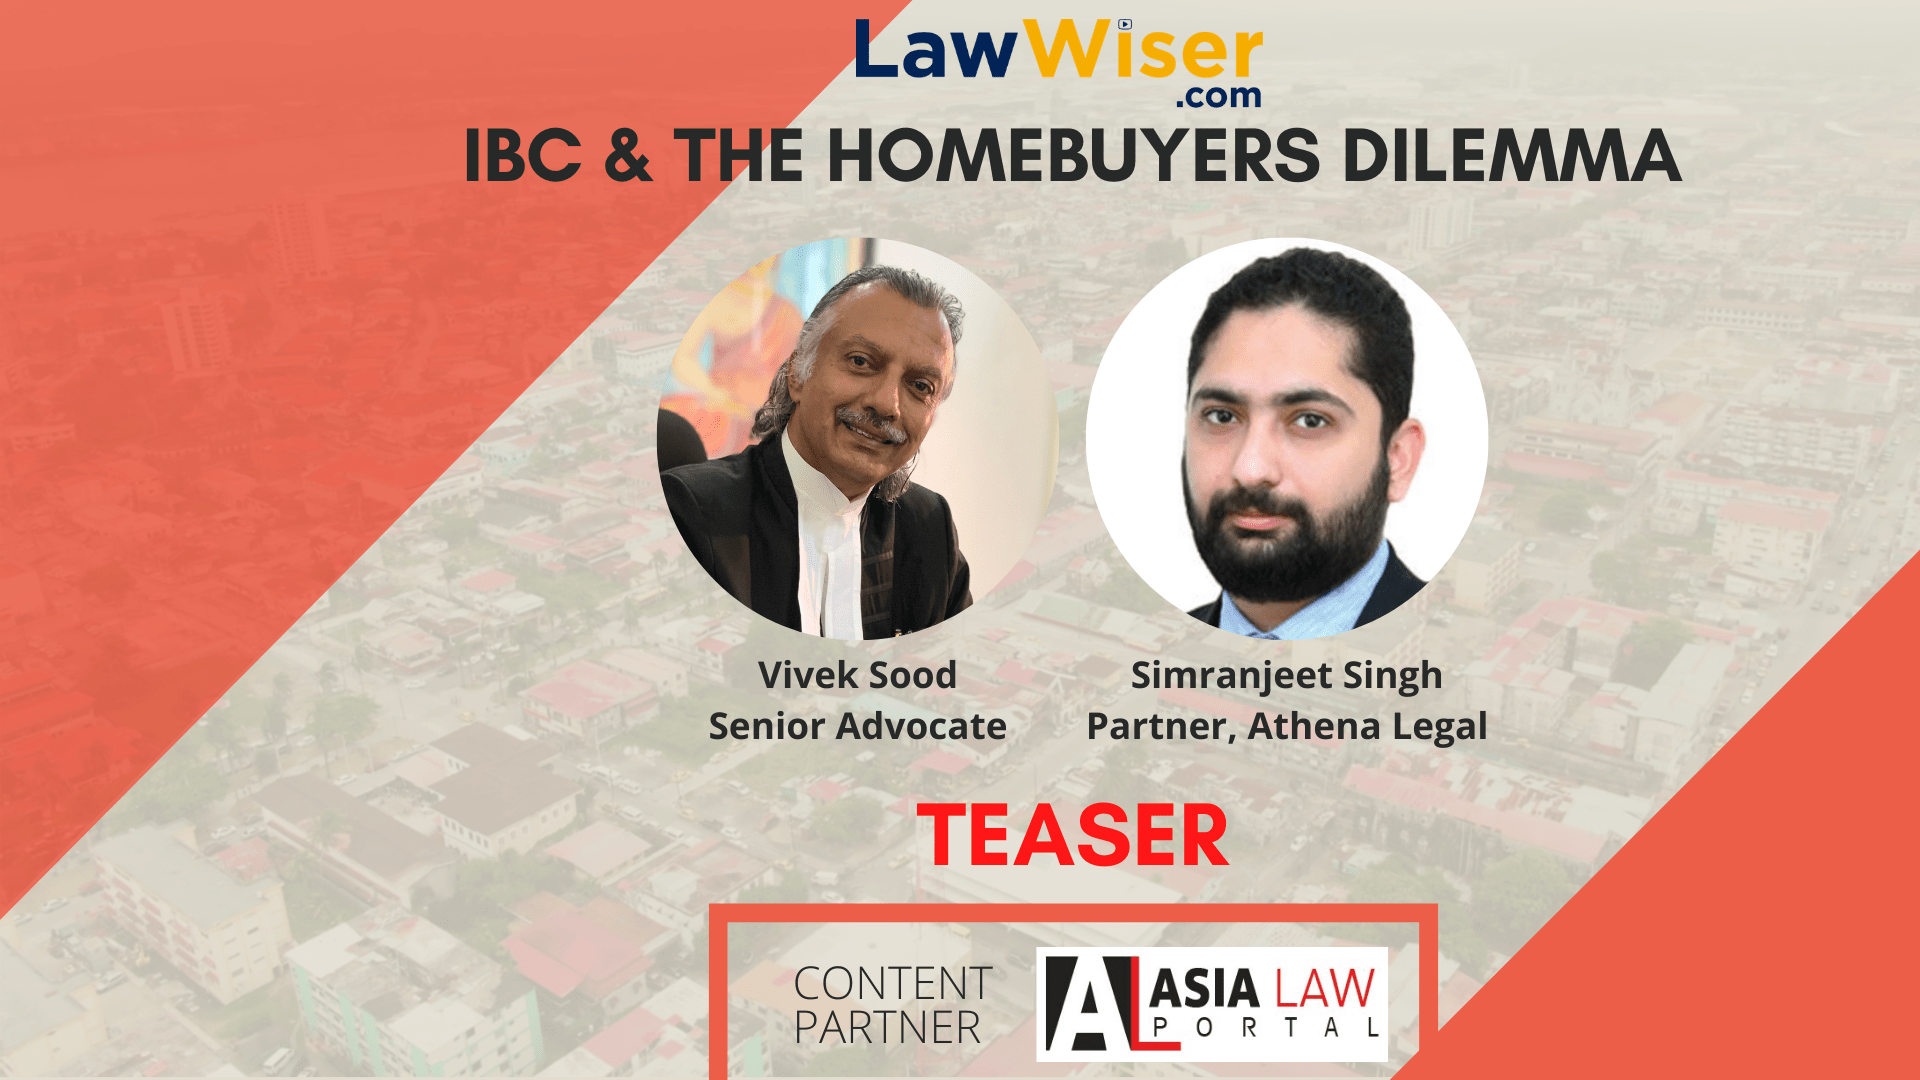 LawWiser | IBC & The Homebuyers Dilemma | Teaser